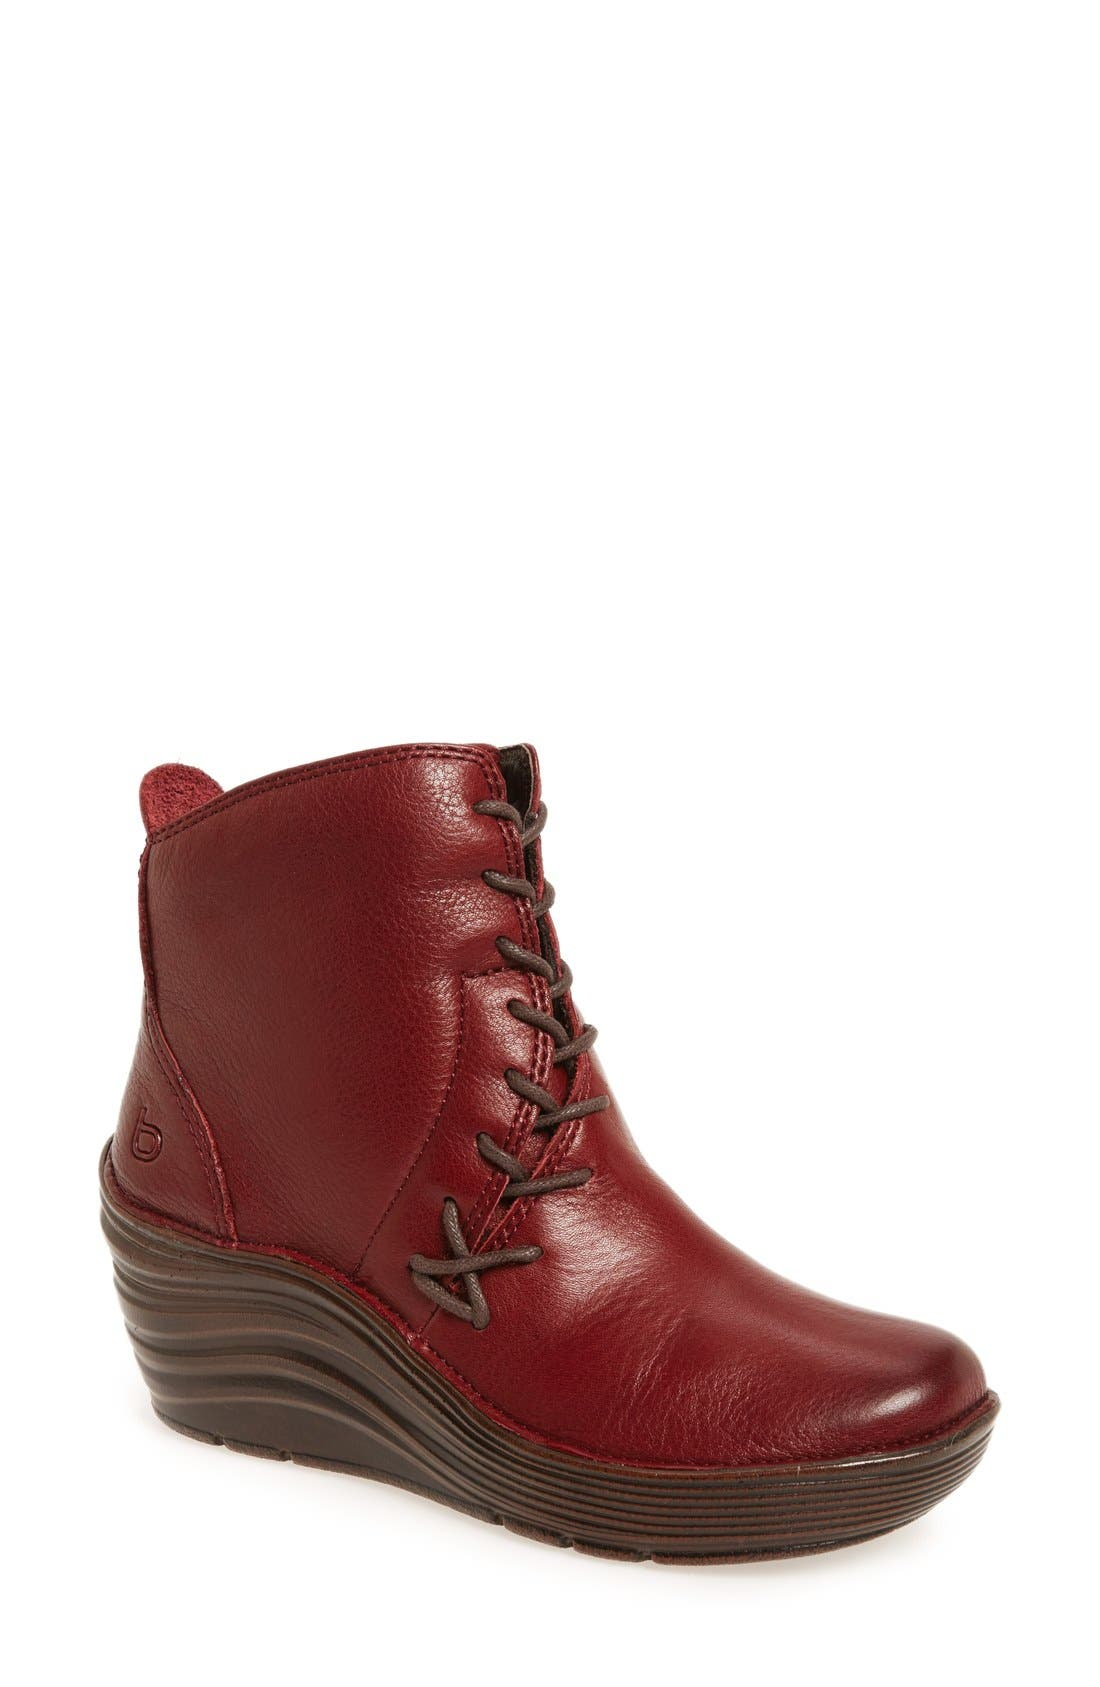 'Corset' Bootie,                             Main thumbnail 1, color,                             Russet Red Nubuck Leather